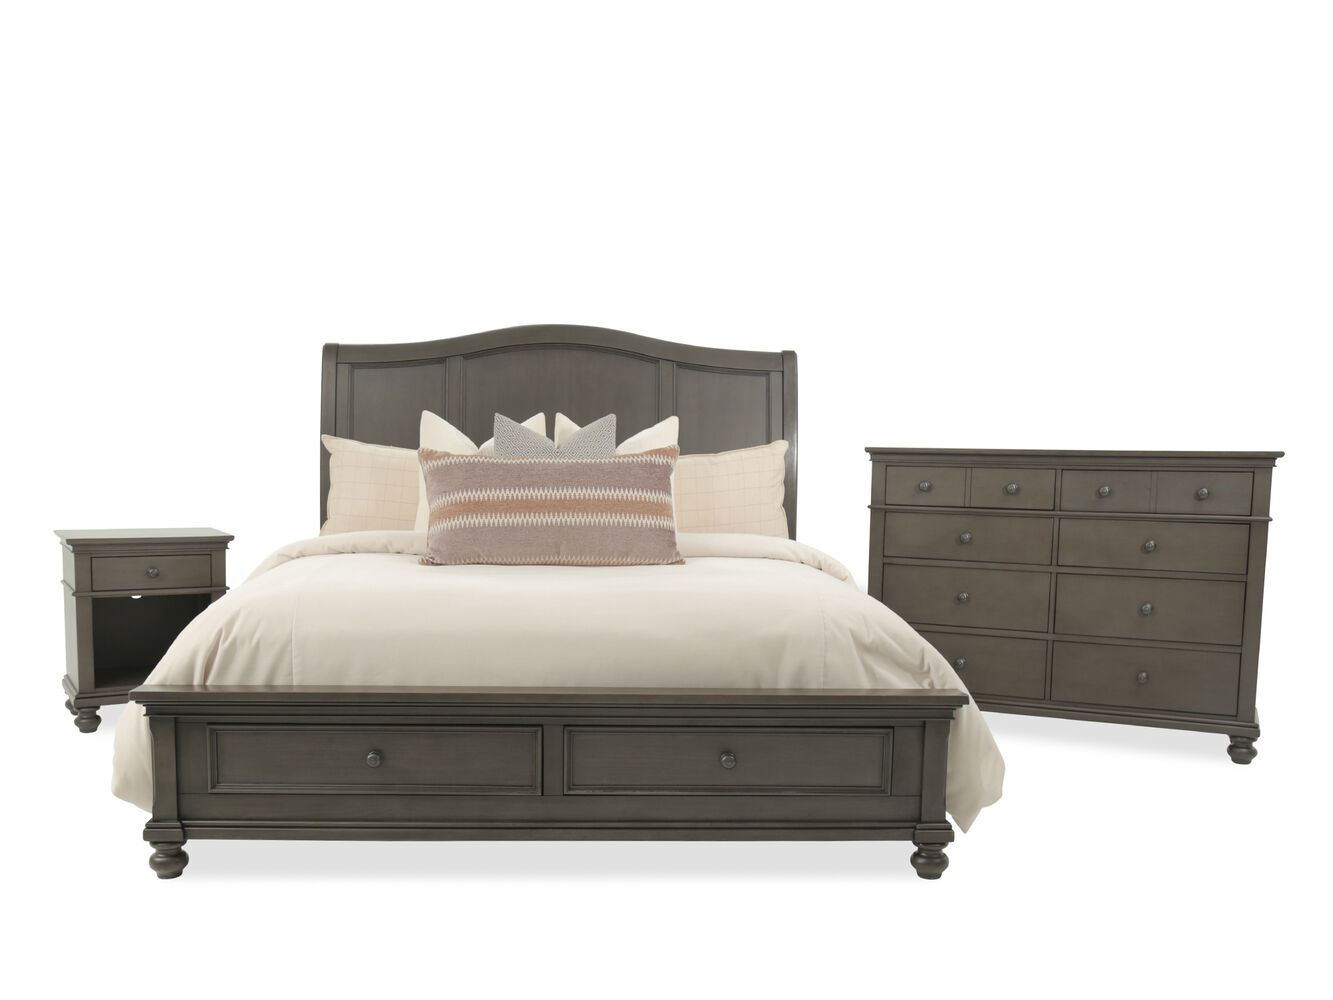 mathis images bedroom quot panel pul cream beds inch button bed sets furniture tufted traditional in brothers